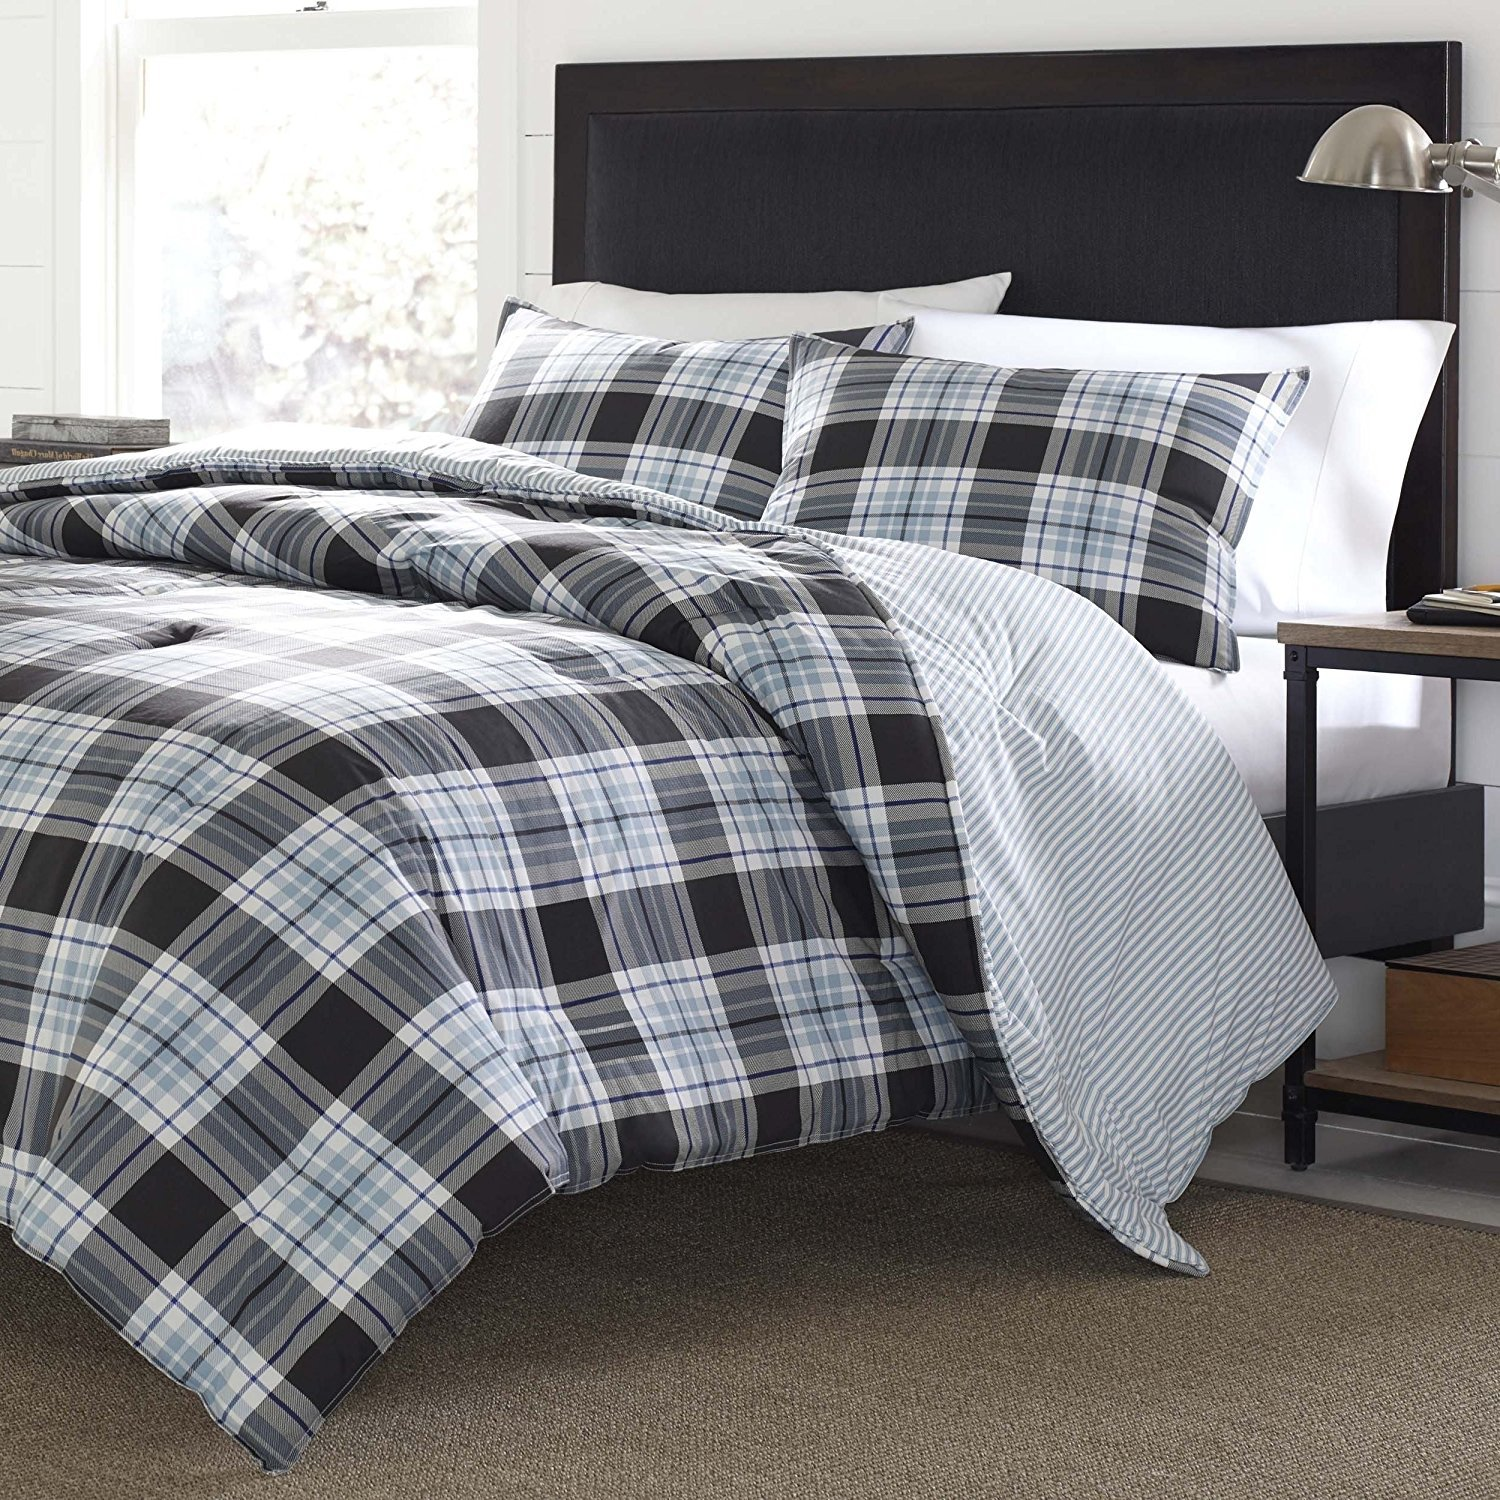 3pc Blue Grey Black Madras Plaid Striped Duvet Cover King Set, Patchwork Checkered Stripe Bedding, Country Woven Pattern, Tartan Check Patch Work Lodge Cabin Stripes Themed, Gray White